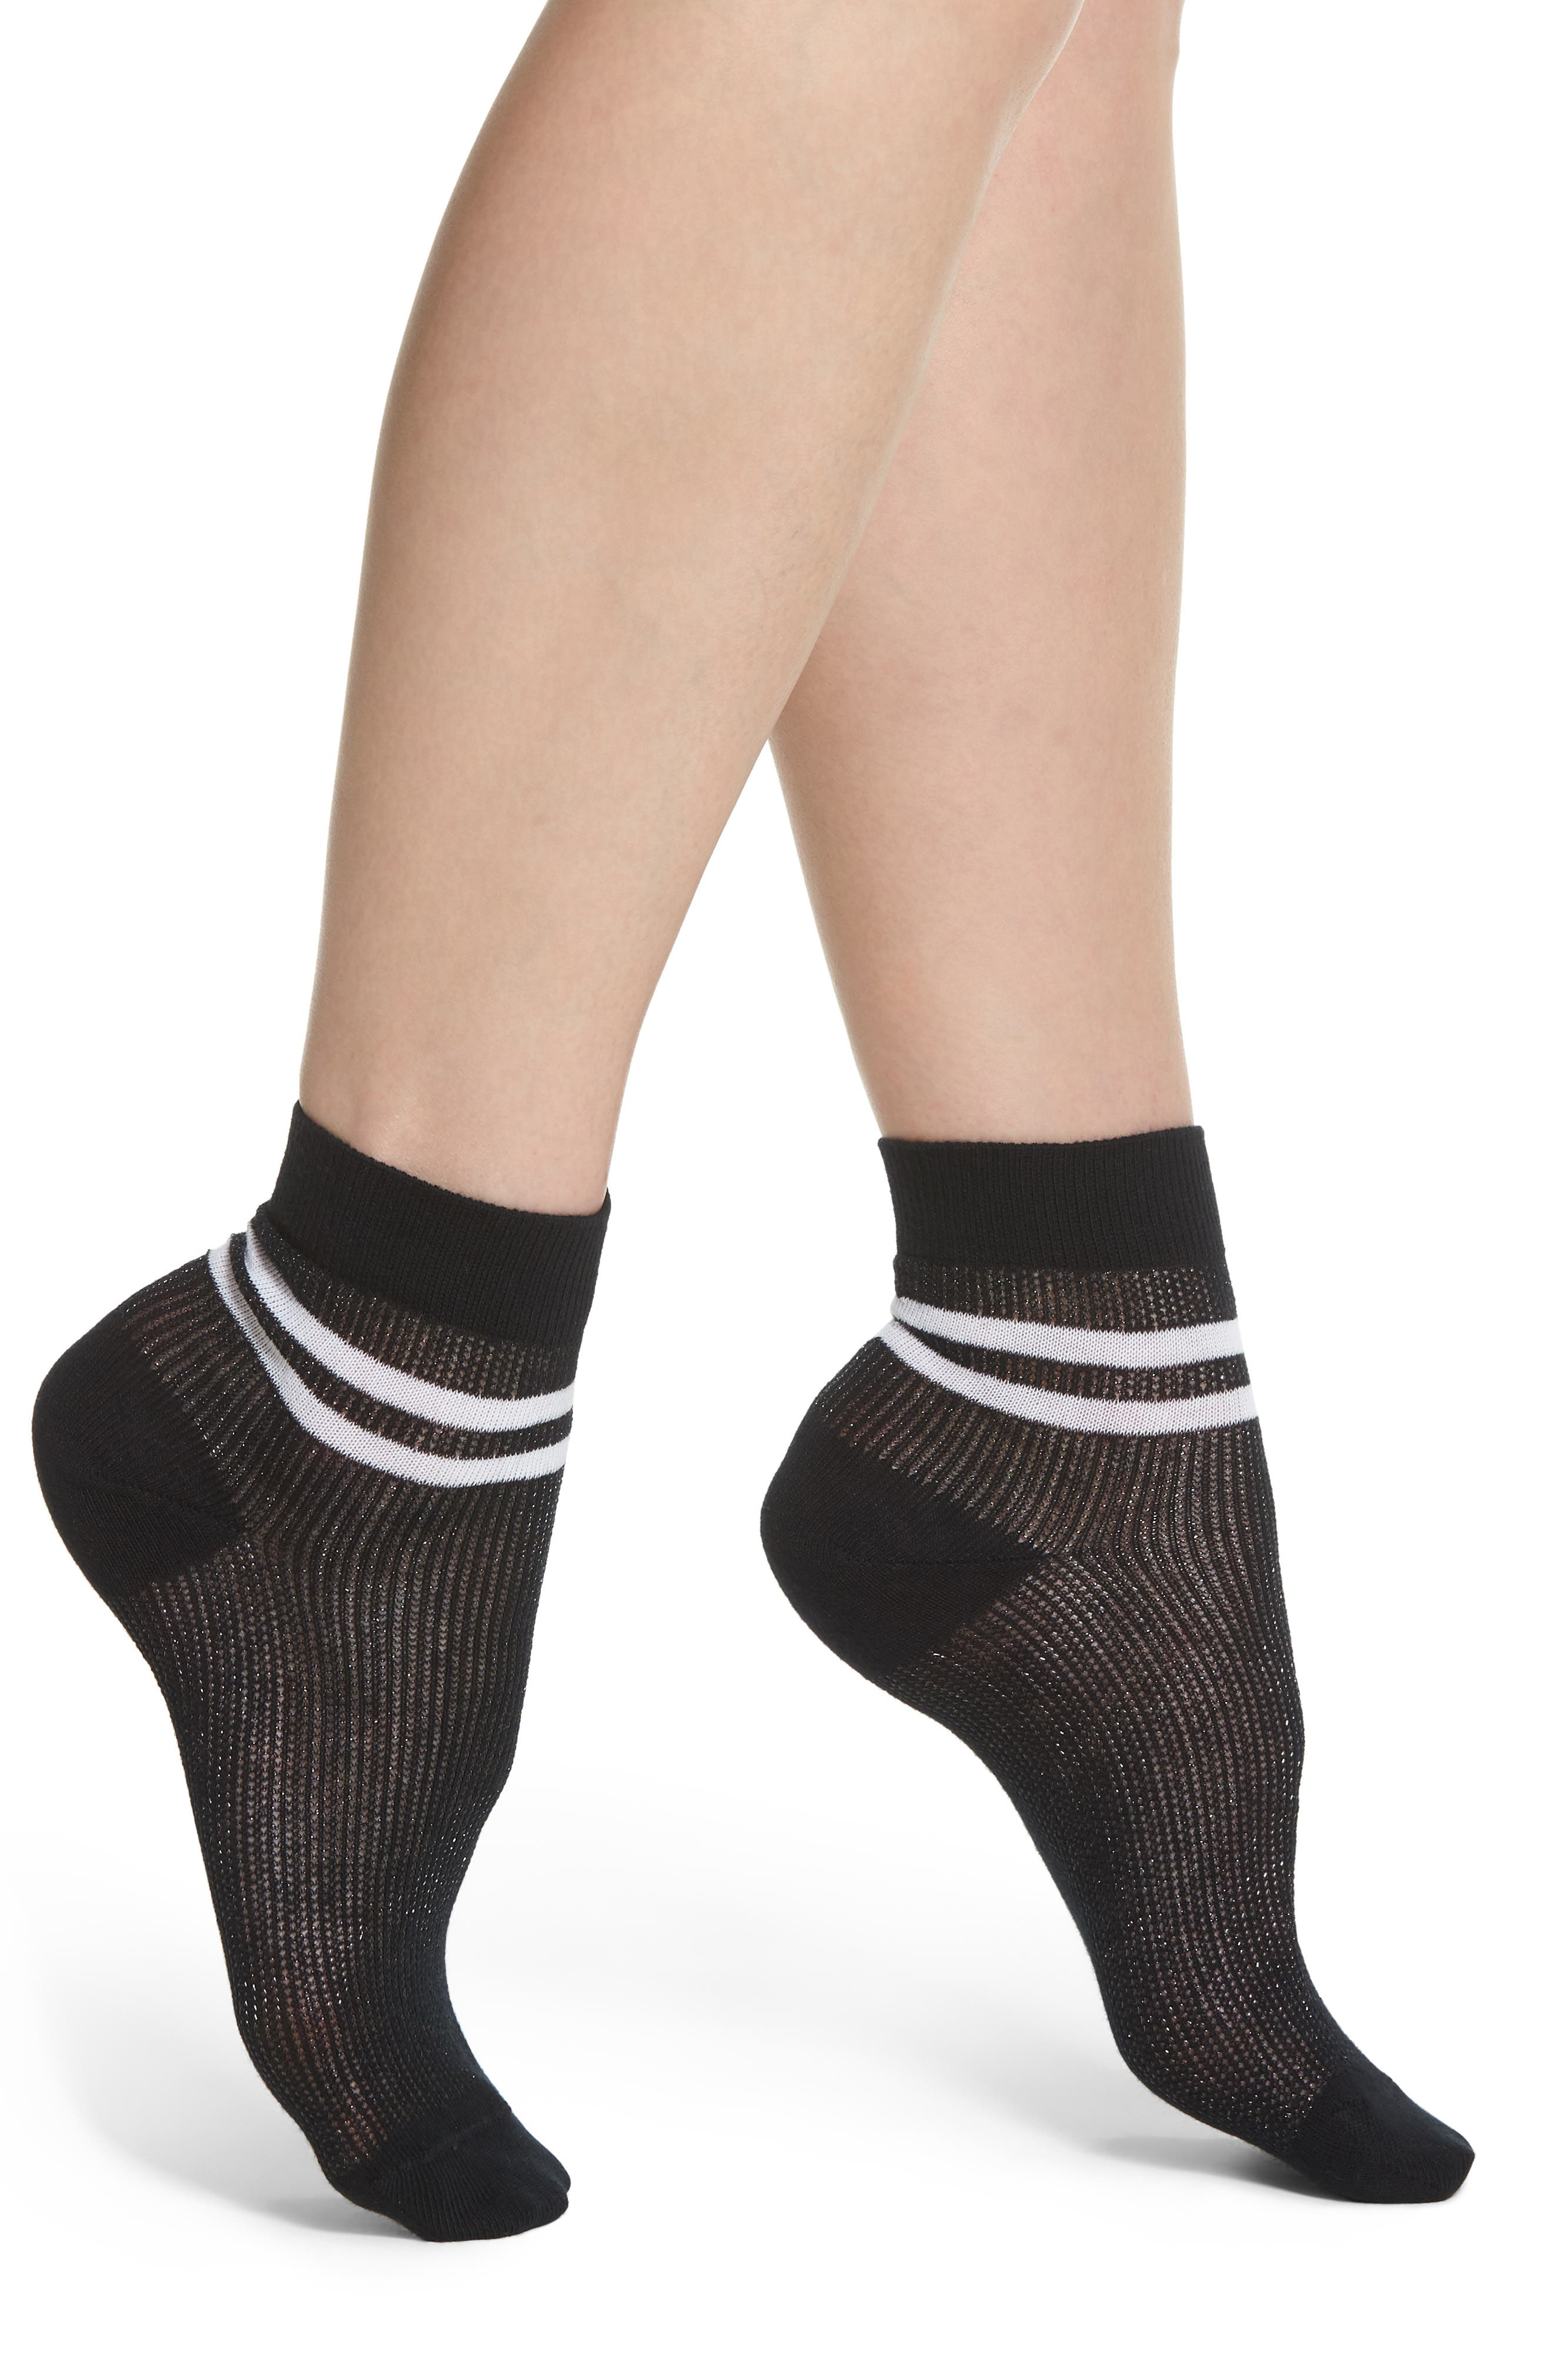 Varsity Ankle Socks,                             Main thumbnail 1, color,                             001